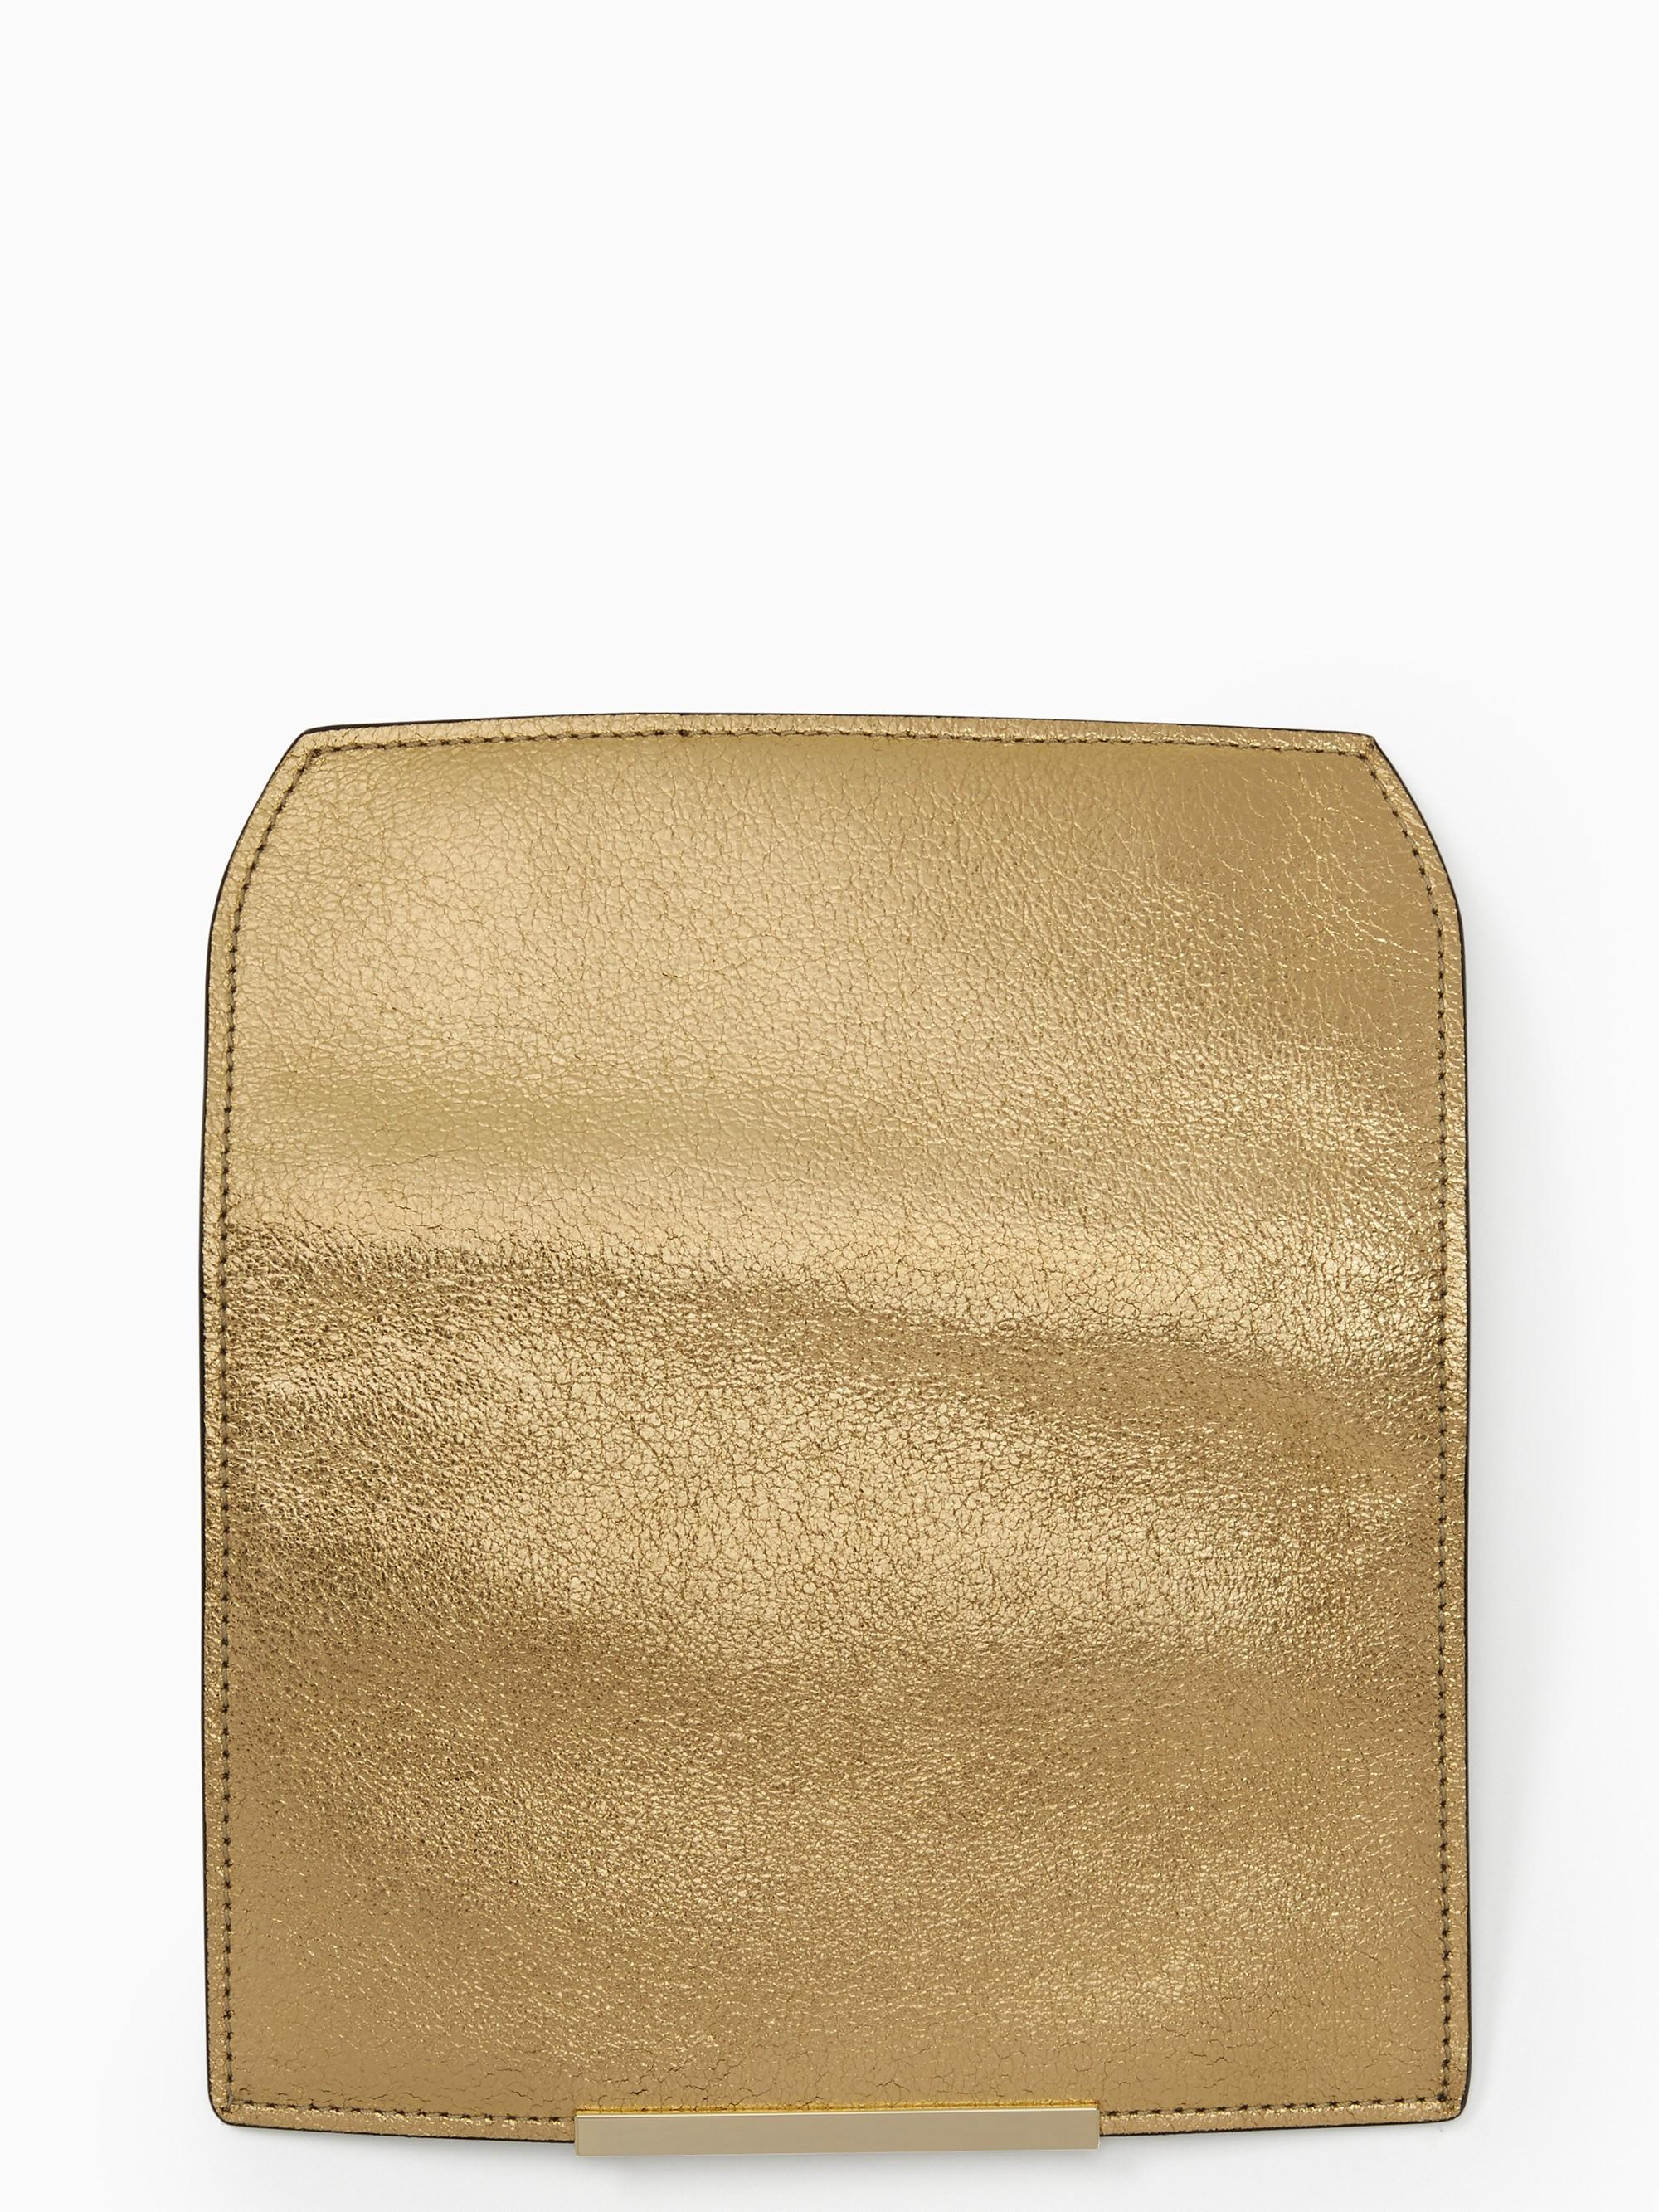 Kate Spade Make It Mine Metallic Pebble Flap In Gold